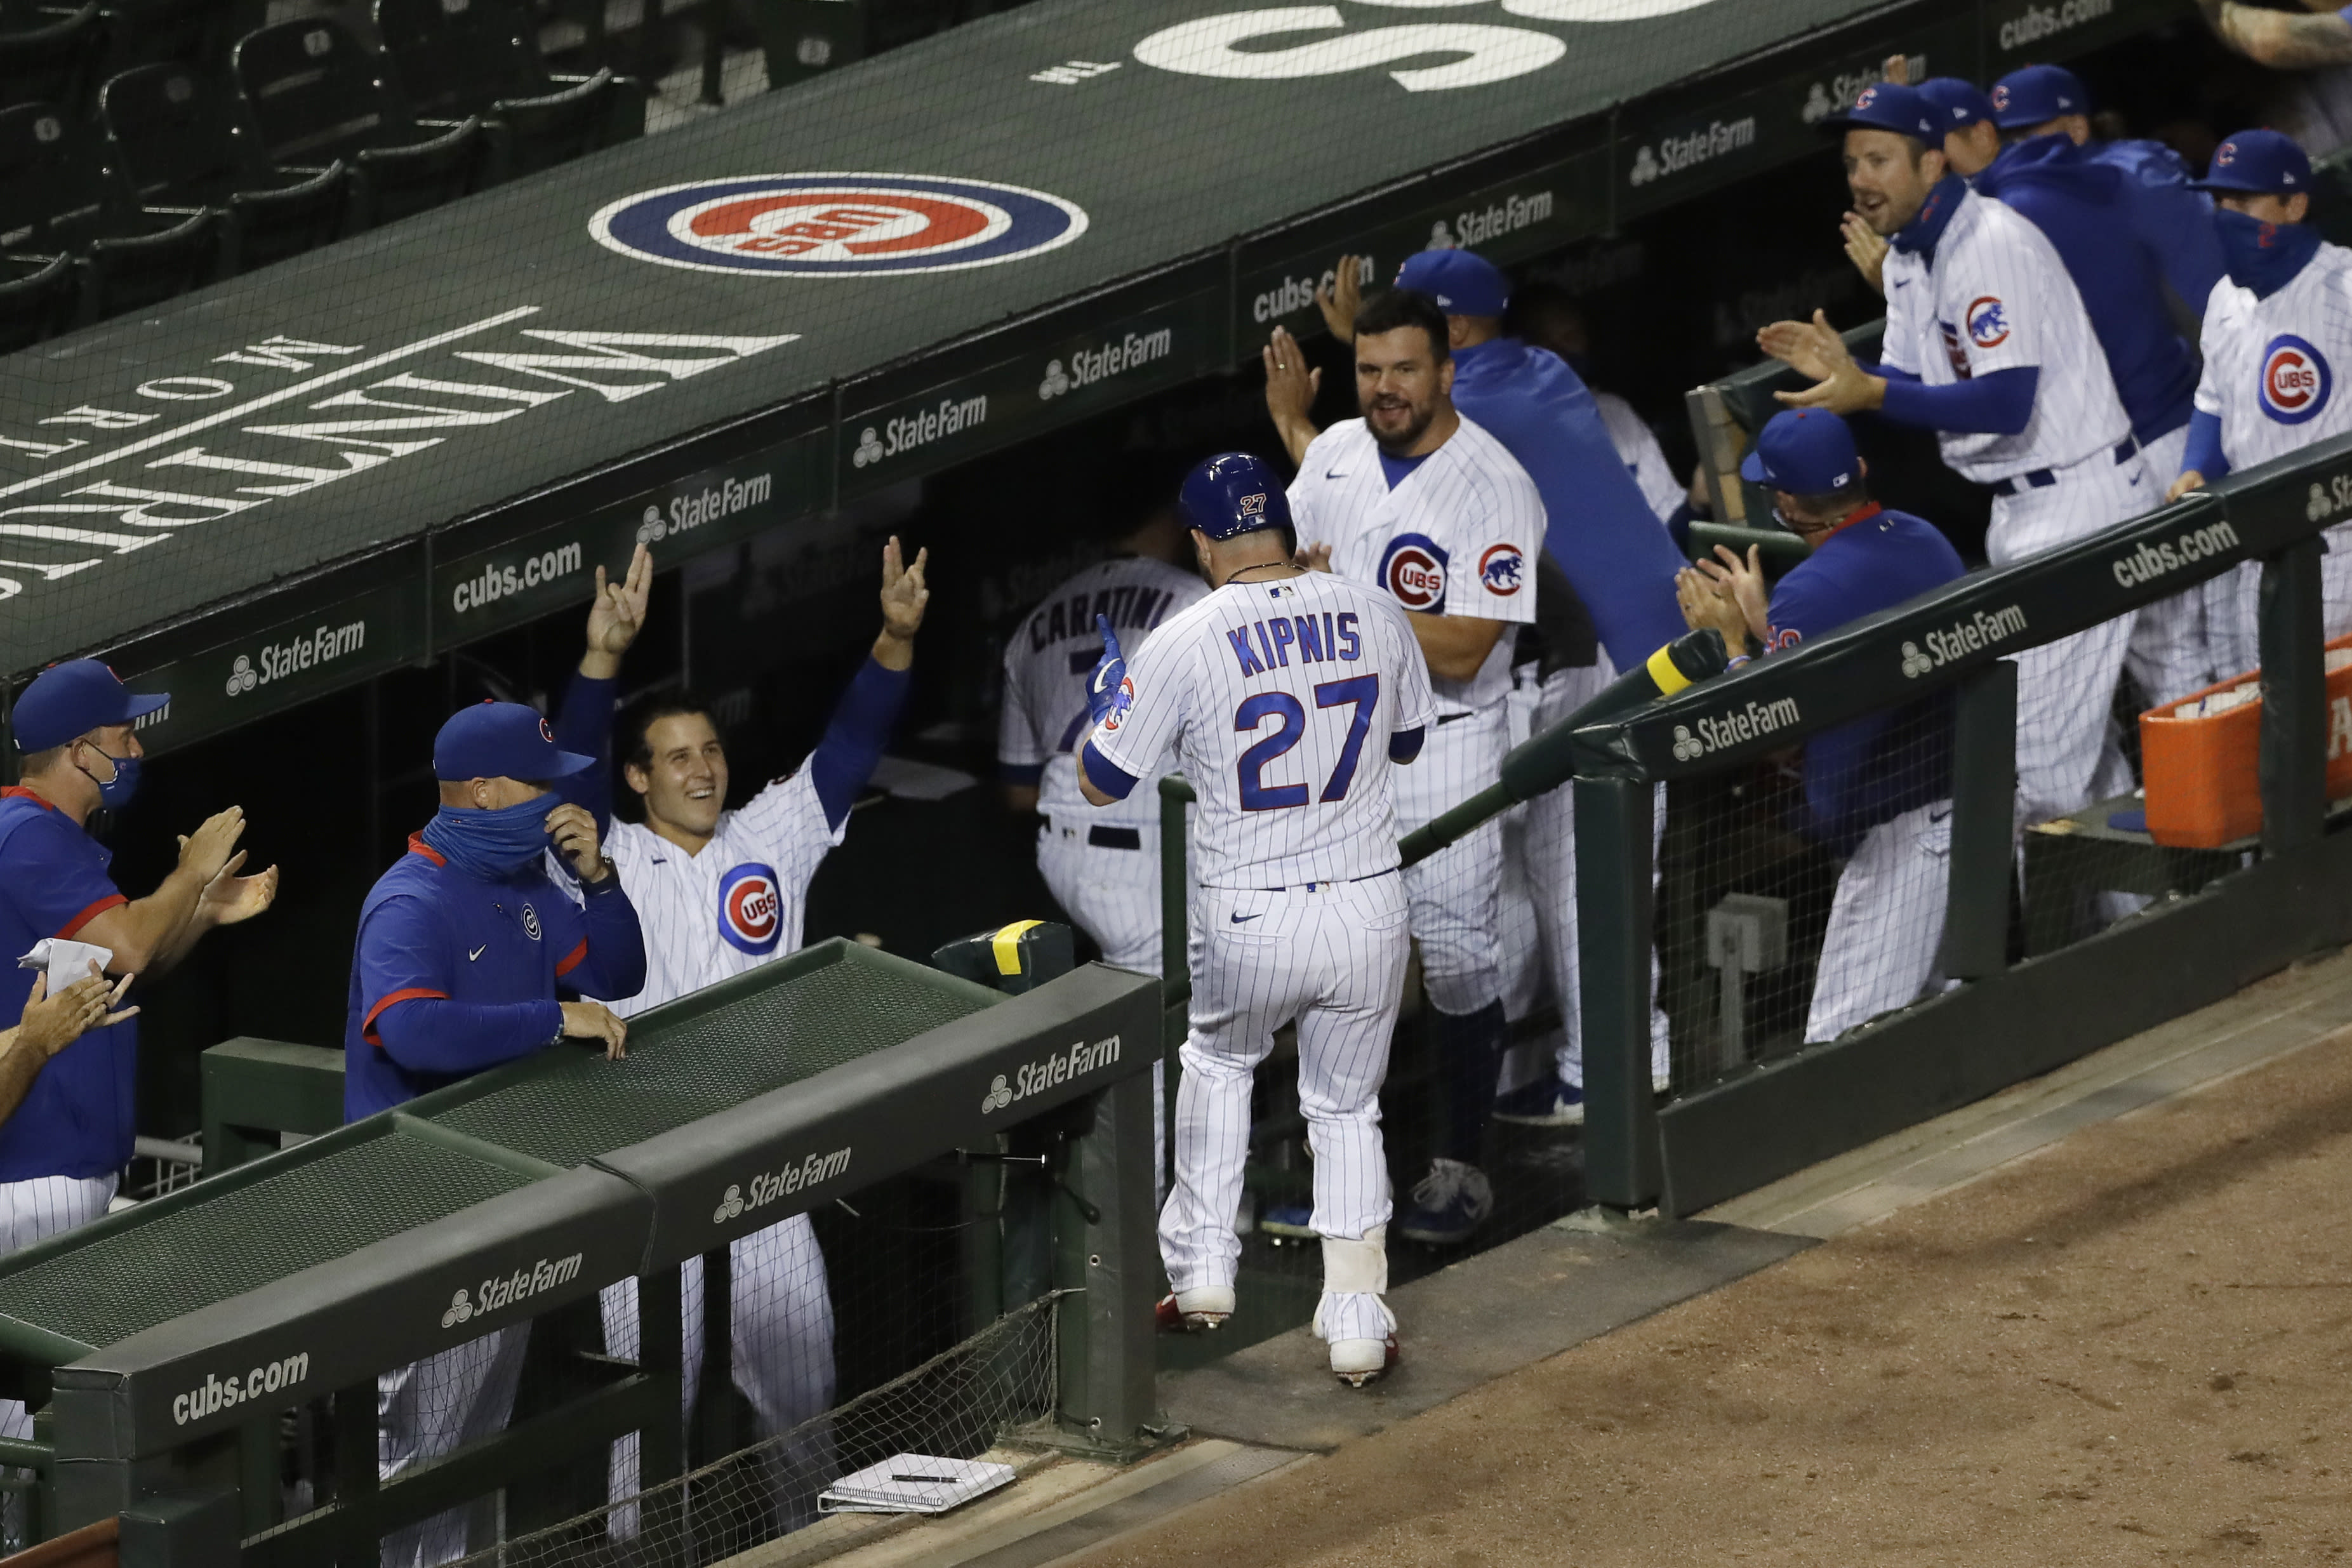 Chicago Cubs' Jason Kipnis (27) is congratulated by teammates after hitting a solo home run against the Pittsburgh Pirates during the fourth inning of a baseball game in Chicago, Friday, July 31, 2020. (AP Photo/Nam Y. Huh)